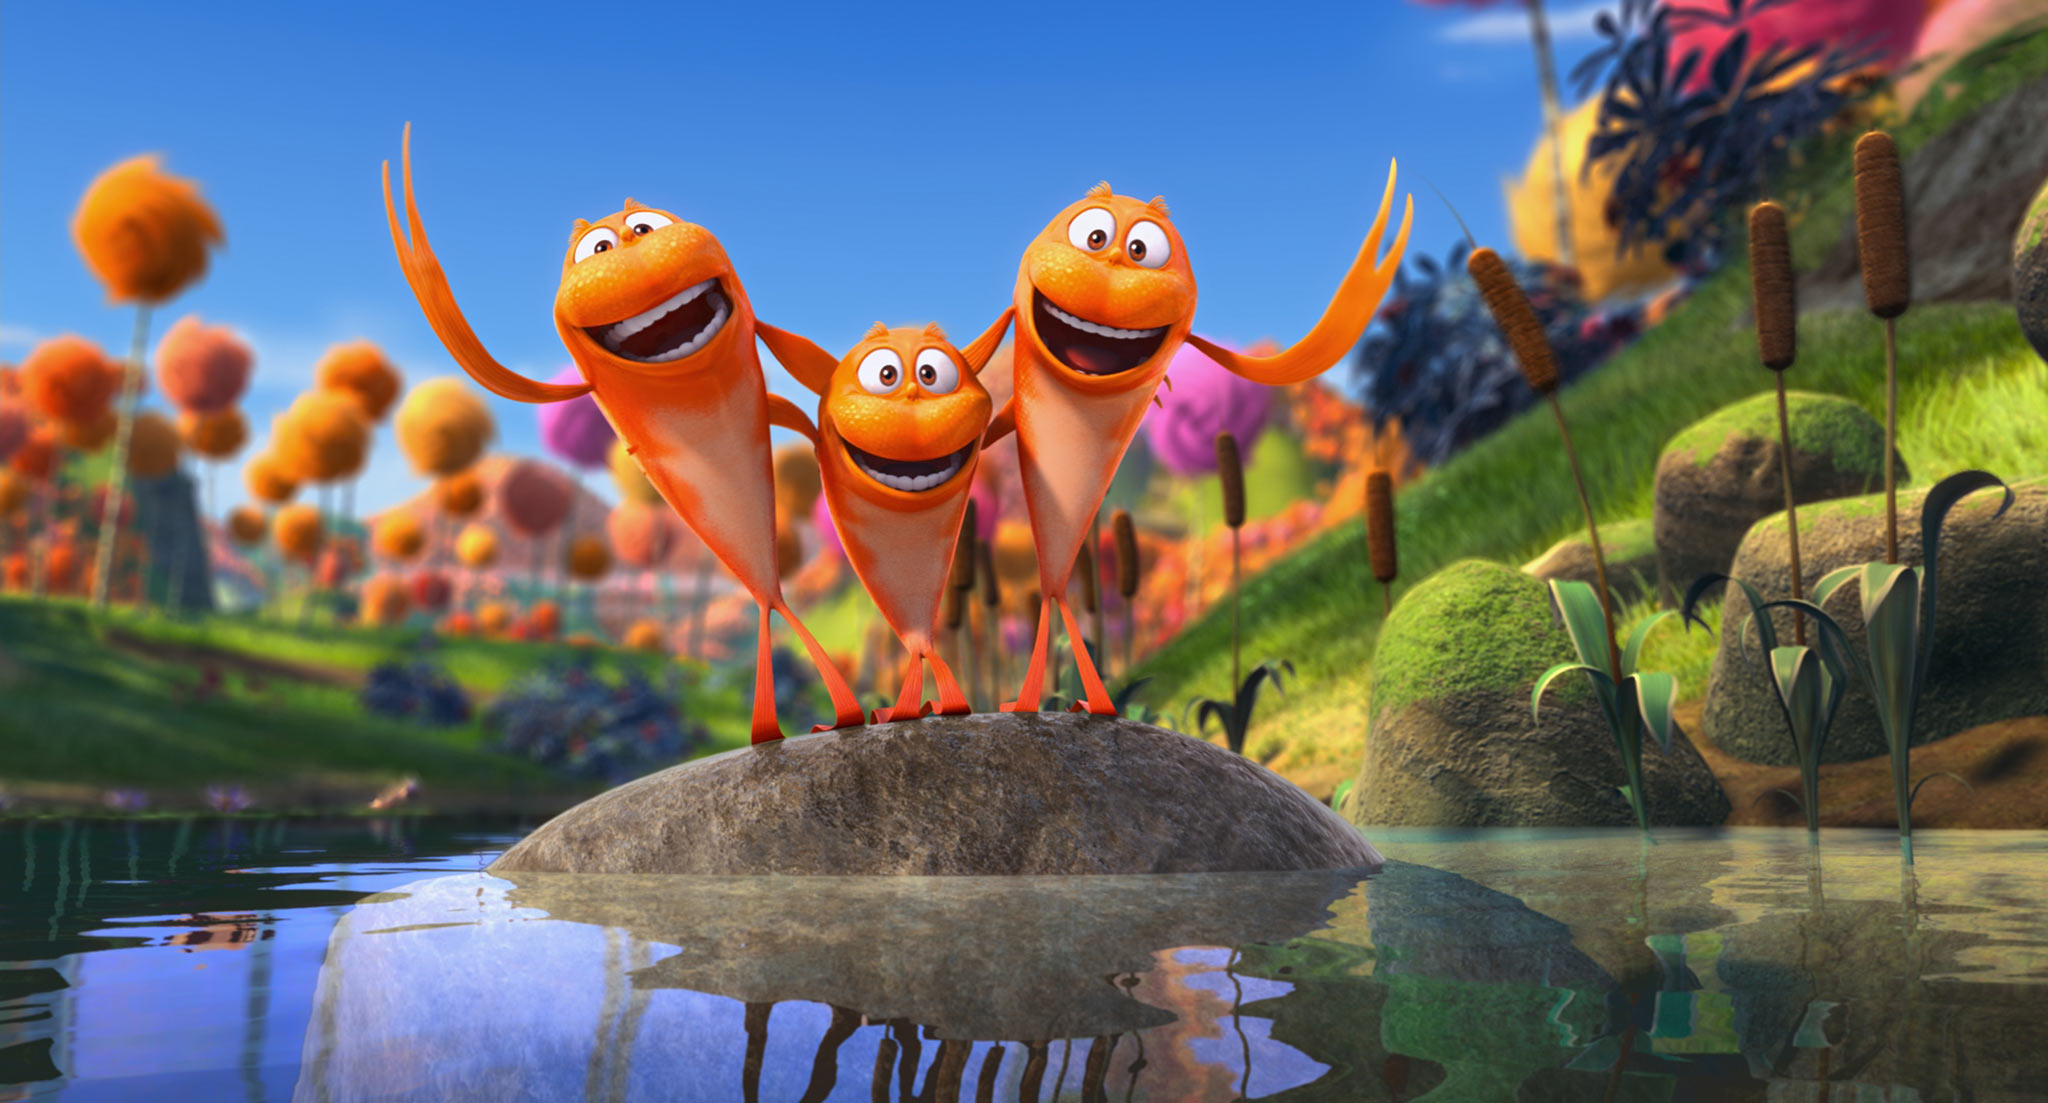 Lorax background images galleries for The fish doctor